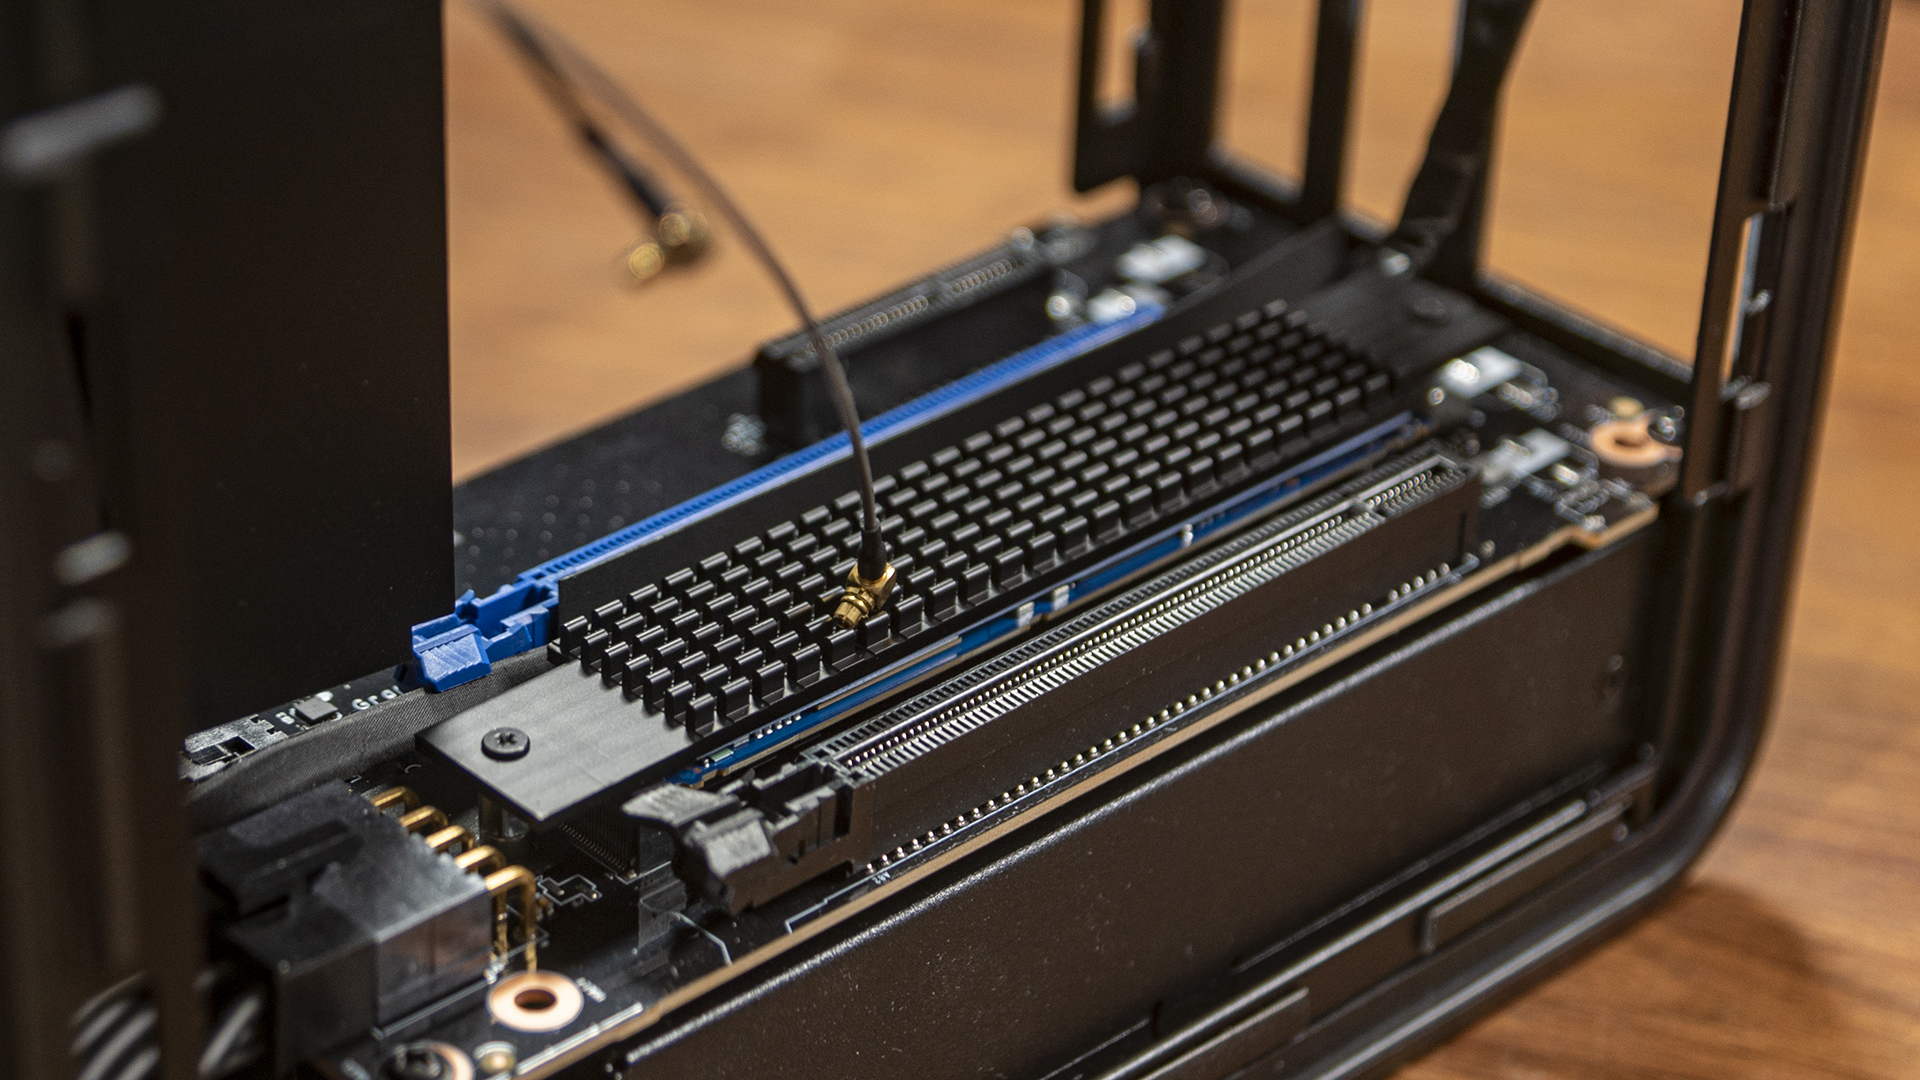 Ghost Canyon Intel NUC 9 Extreme SSD